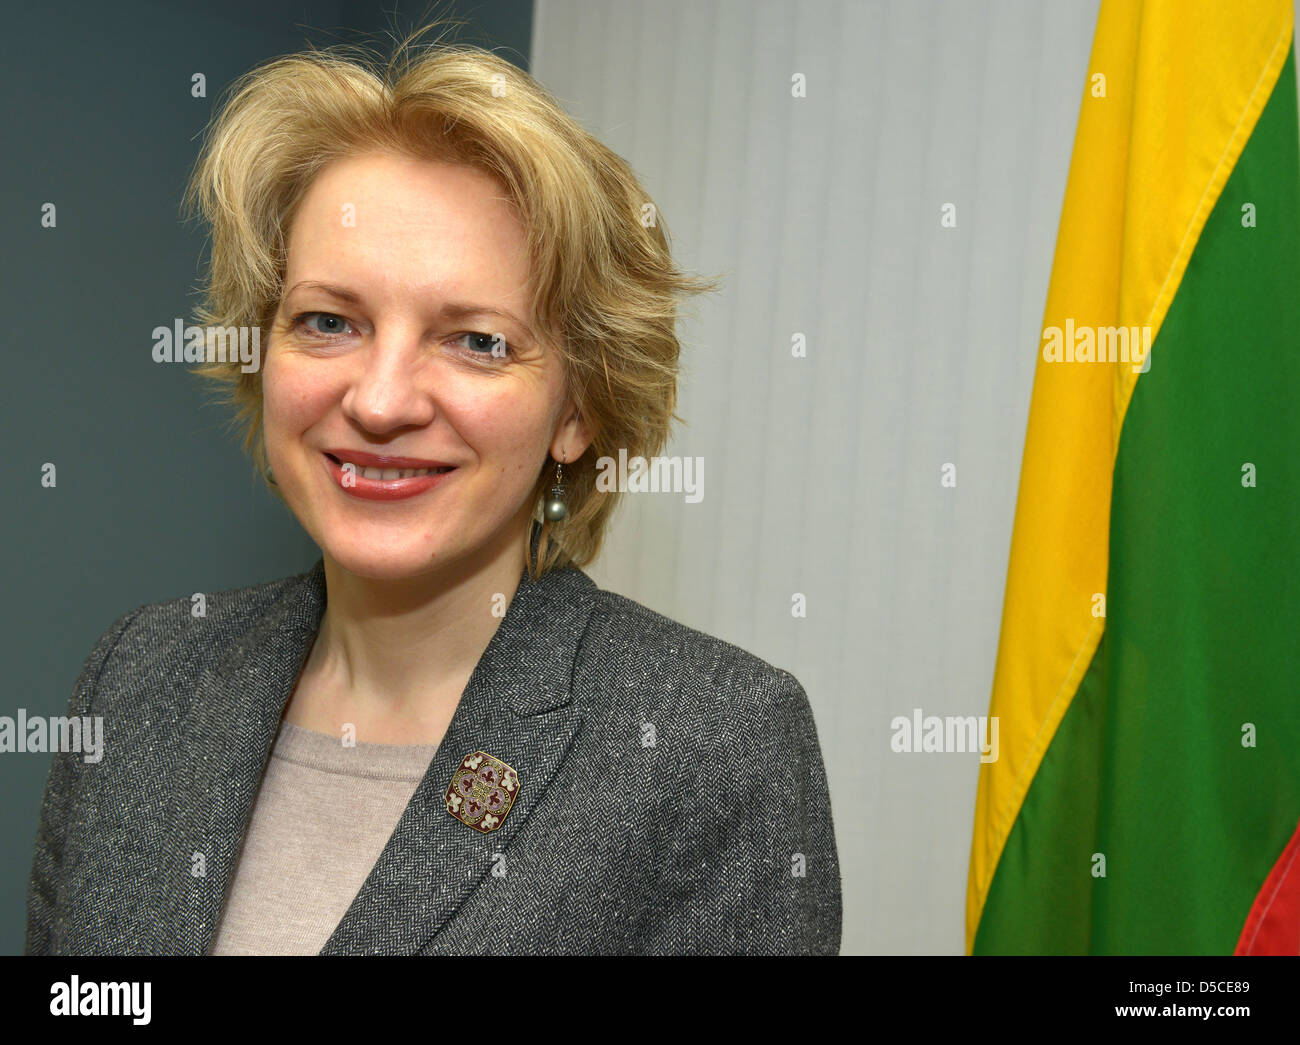 Lithuania Ambassador in London, Asta Skaisgiryte-Liauskiene - Stock Image